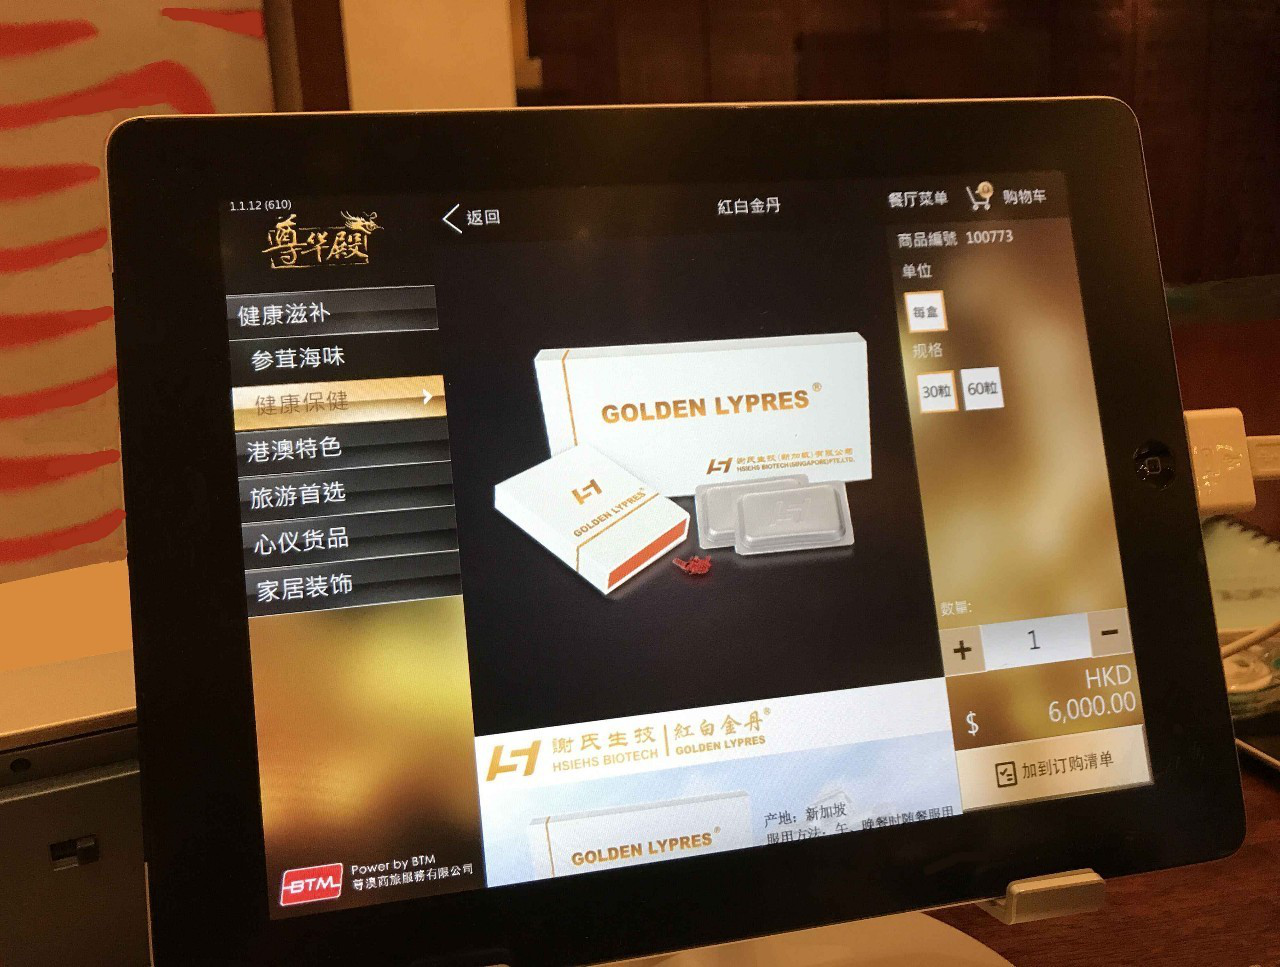 Launching of Golden Lypres® on Suncity VIP Clubs'E-Mall Shopping Platform in Macau